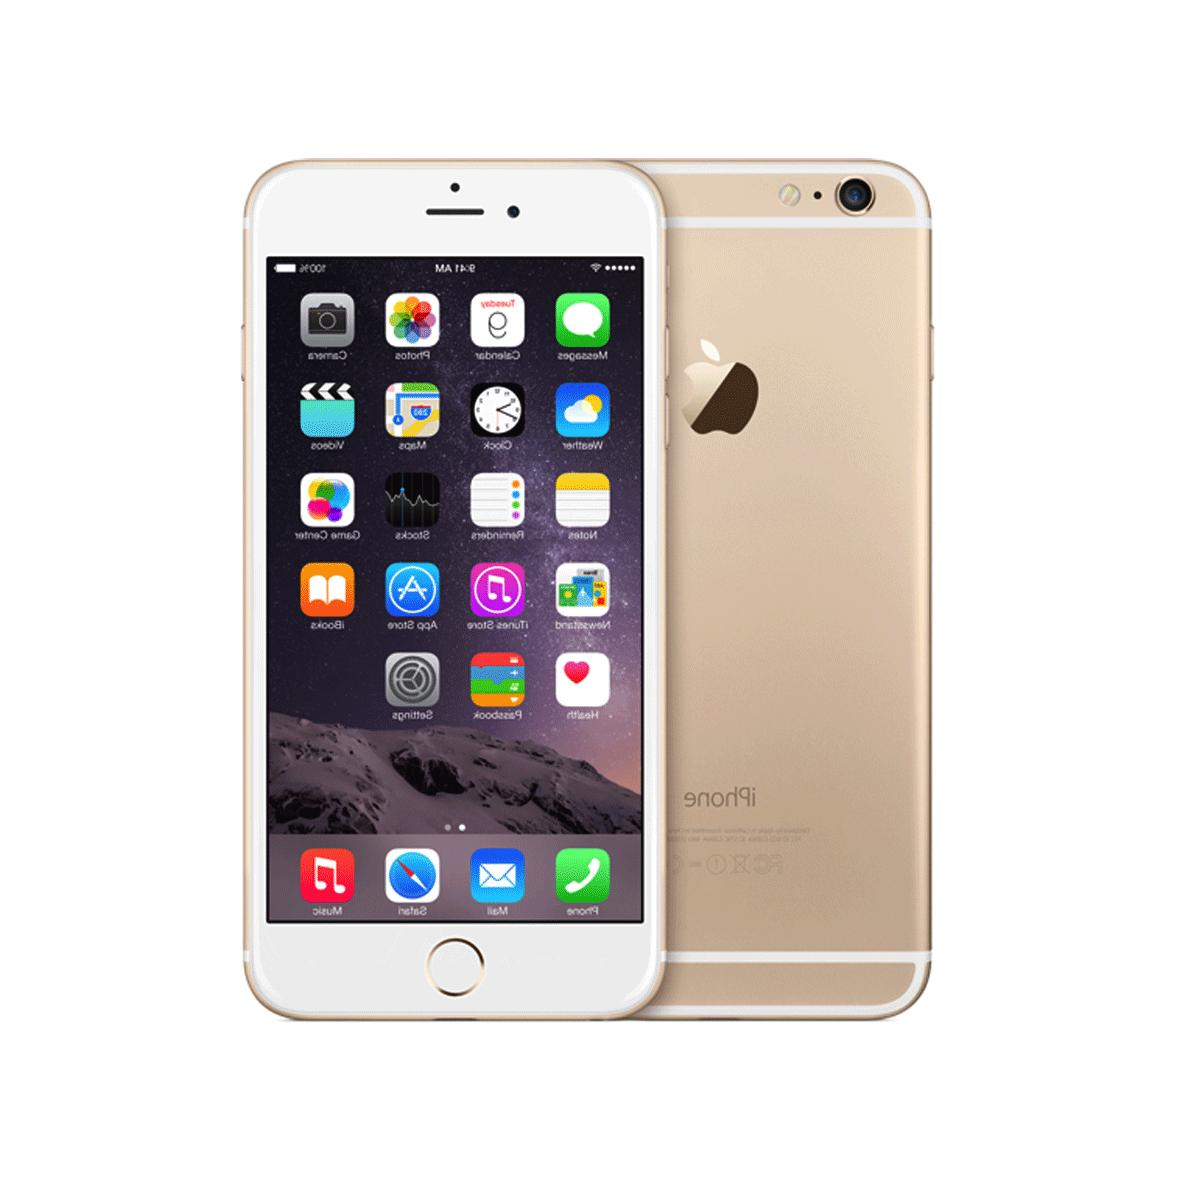 APPLE IPHONE 6 [ RAM 1GB - INTERNAL 16/32/64 GB - CAM 8MP ]